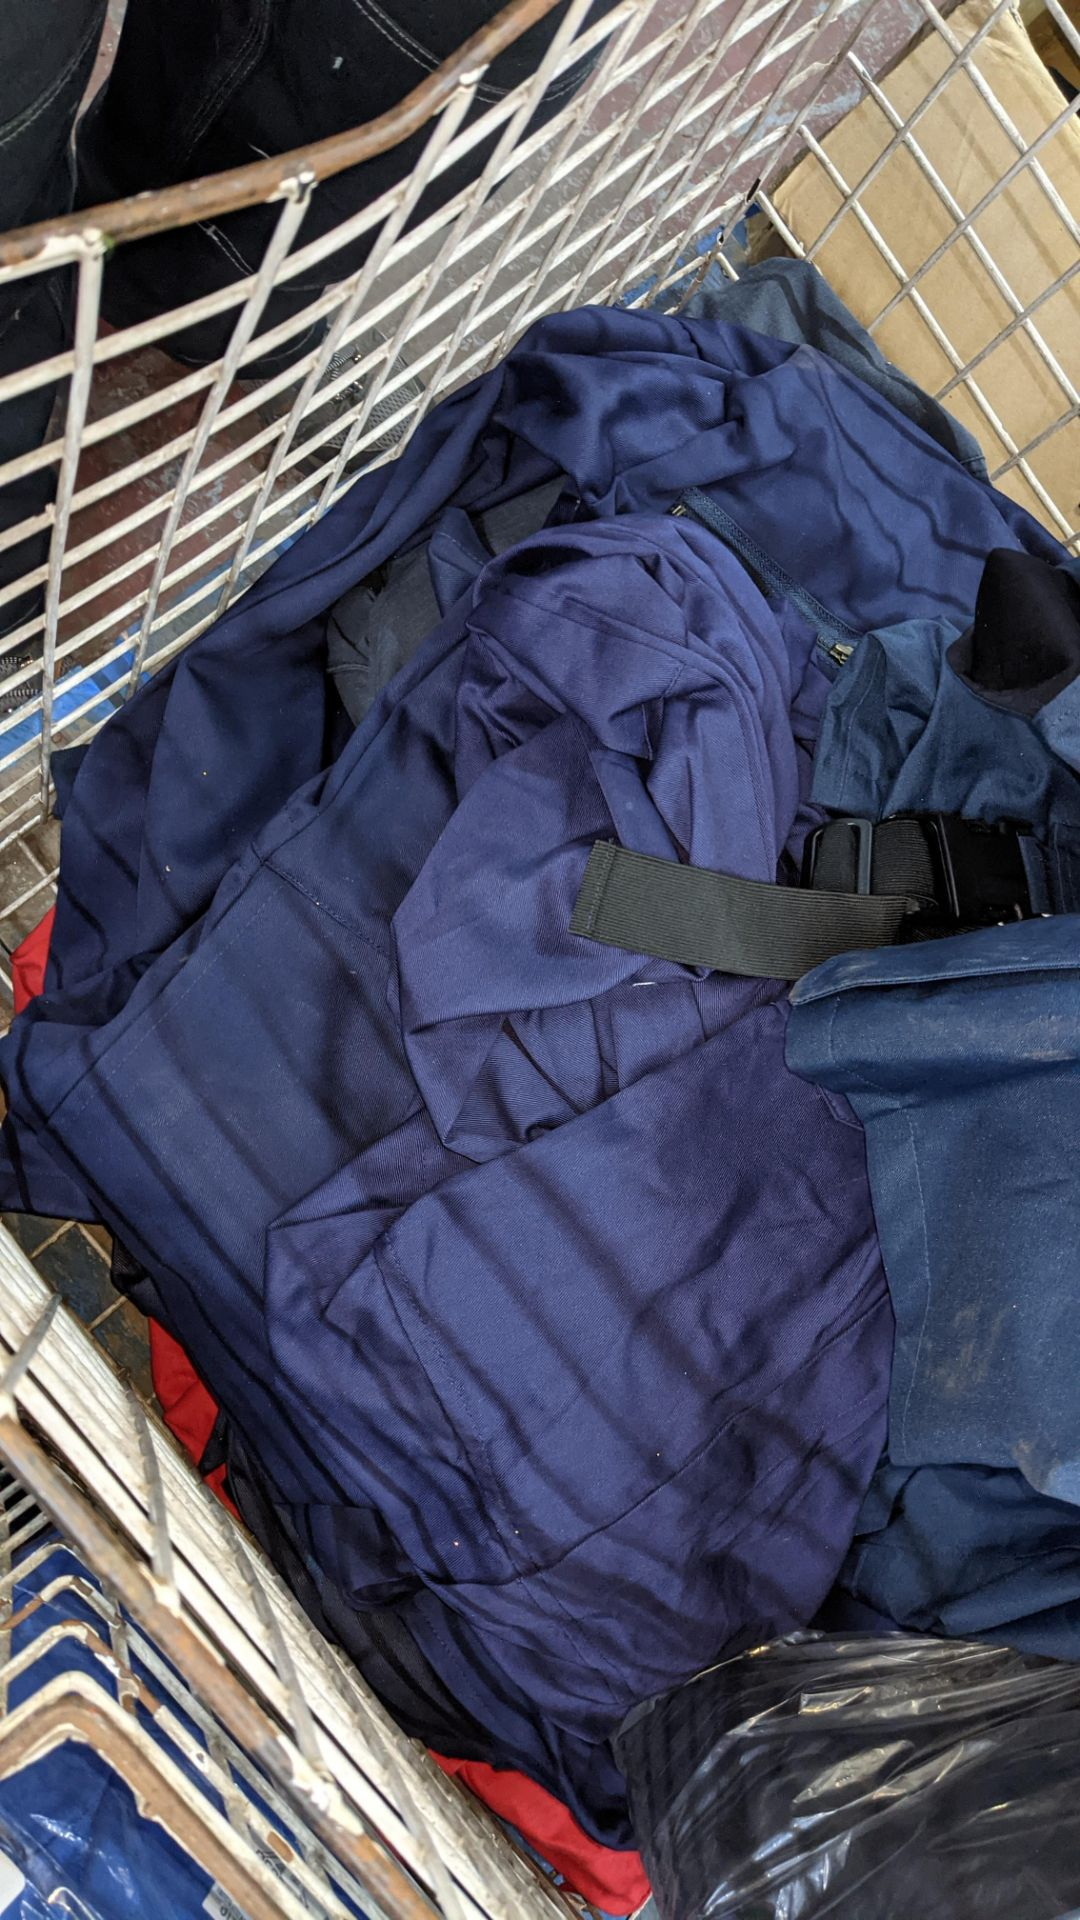 The contents of a cage of Protal flame retardant work clothing. NB cage excluded - Image 5 of 6